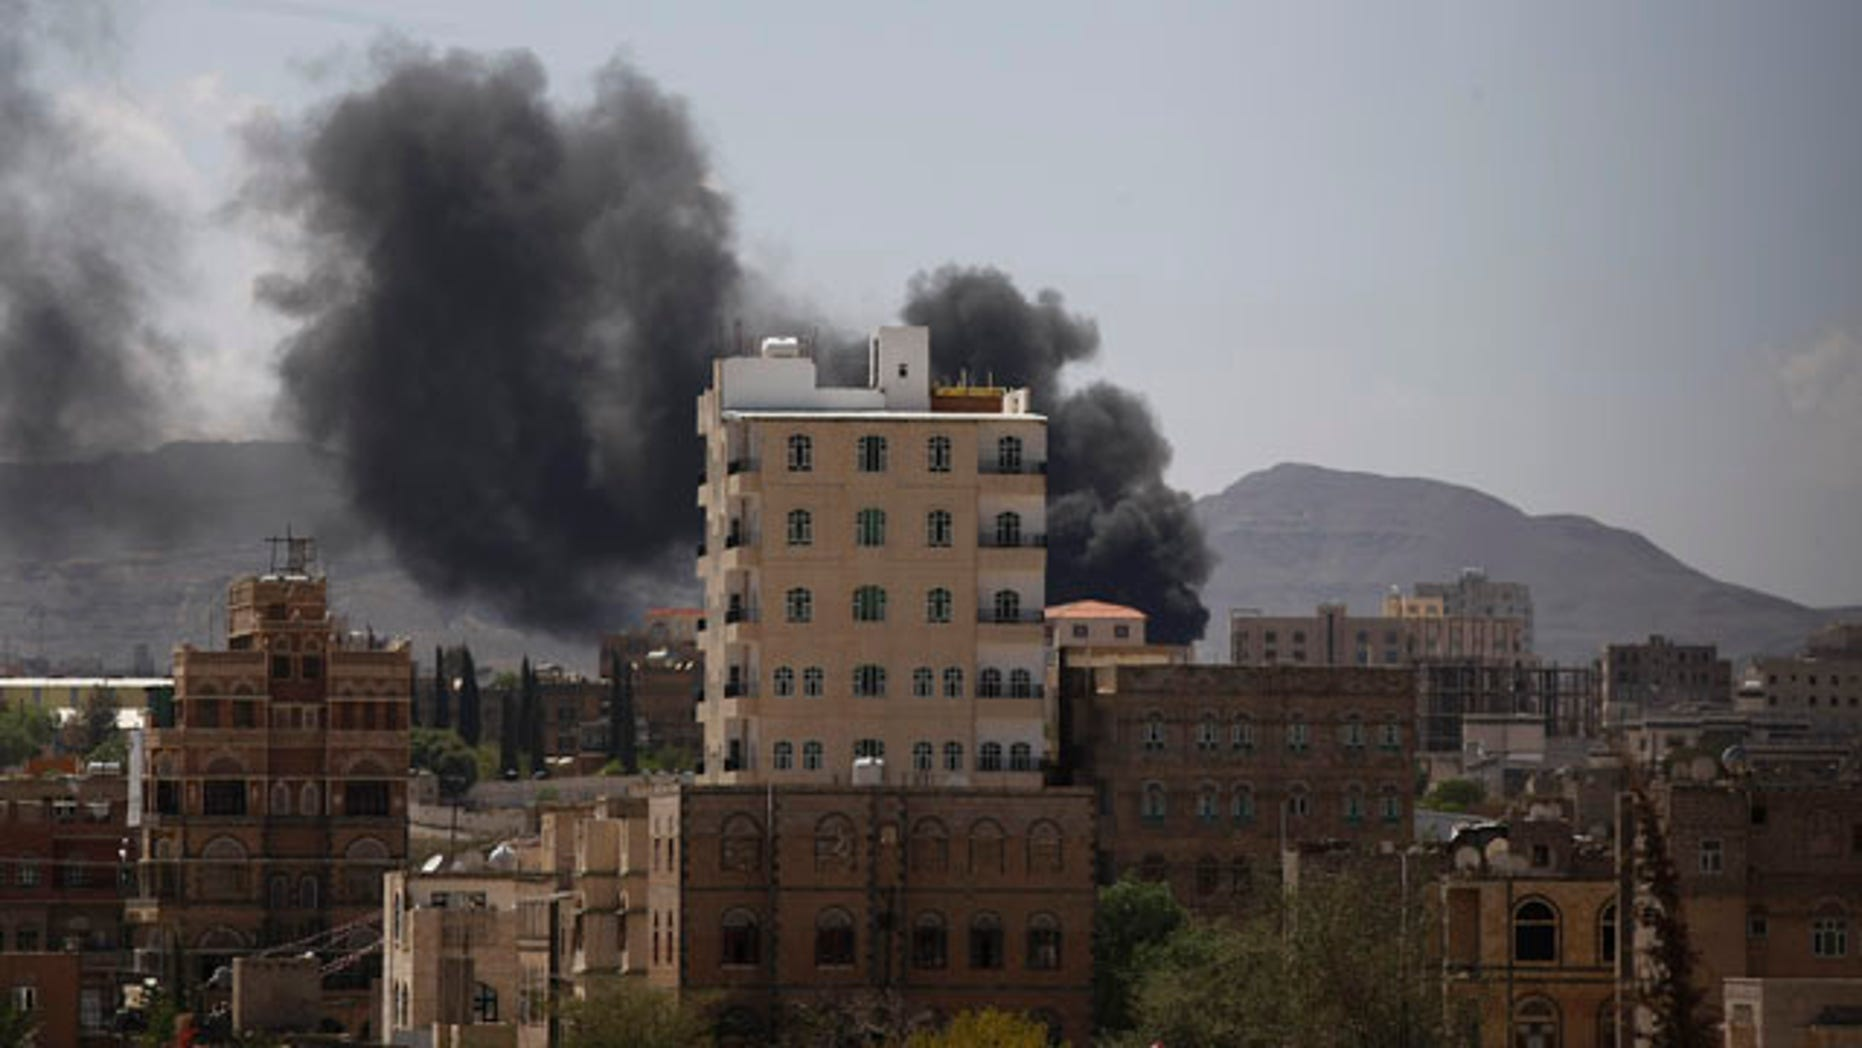 September 21, 2014: Smokes rises from an area during clashes between Sunni militiamen and Hawthi Shiite rebels in Sanaa, Yemen. (AP Photo/Hani Mohammed)